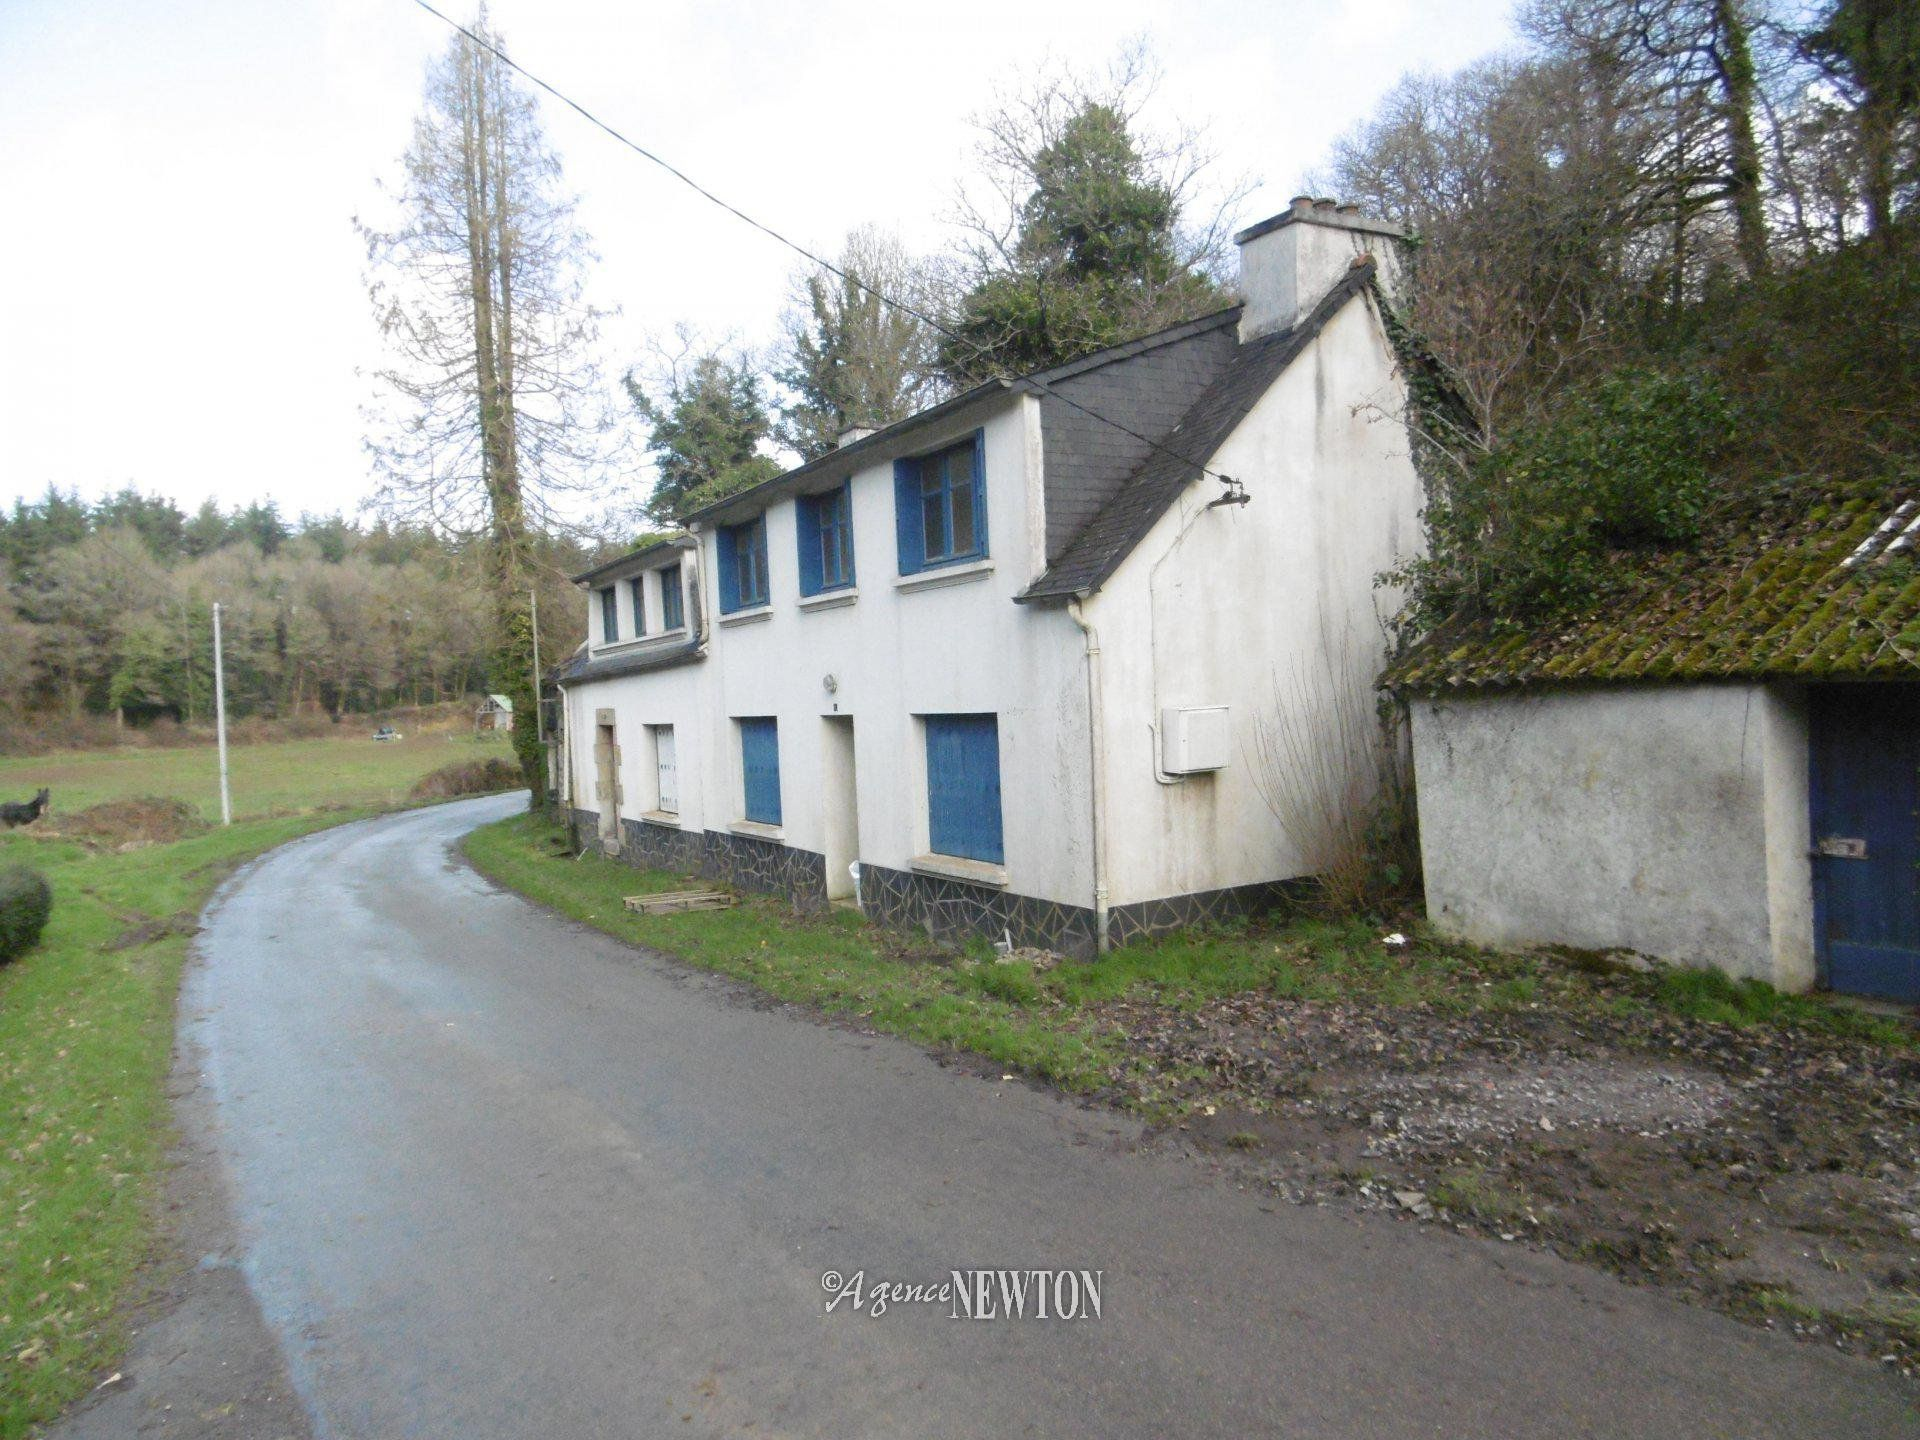 39,9k Attached Houses for sale in France Mael Carhaix